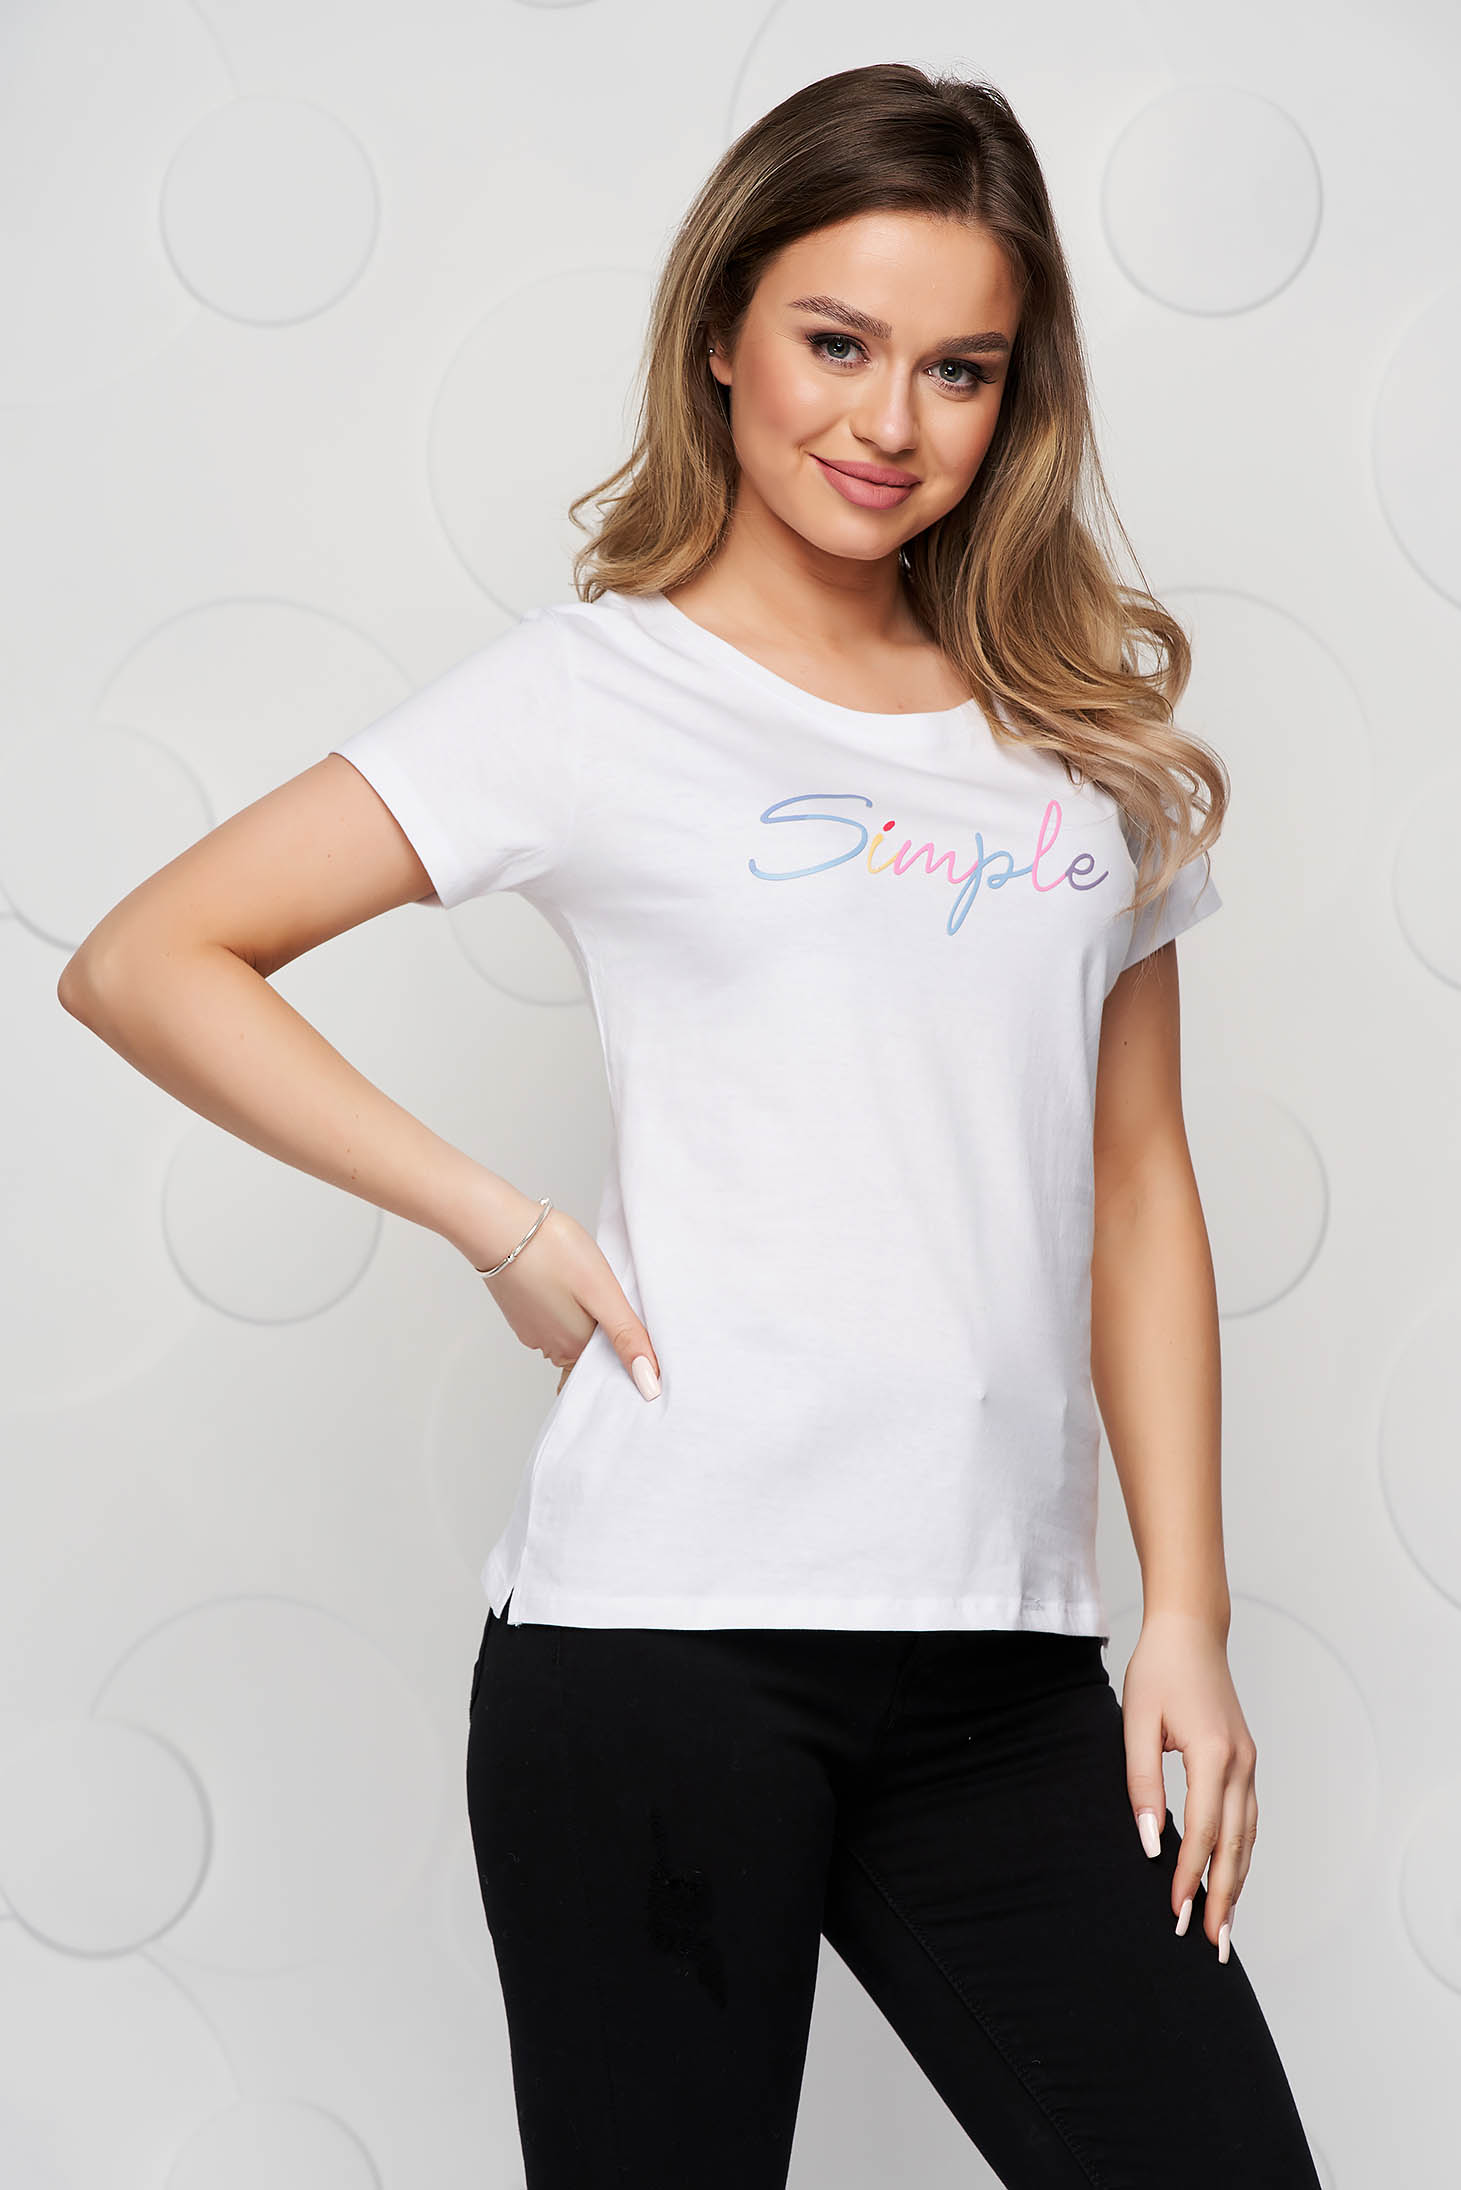 White t-shirt loose fit cotton with rounded cleavage